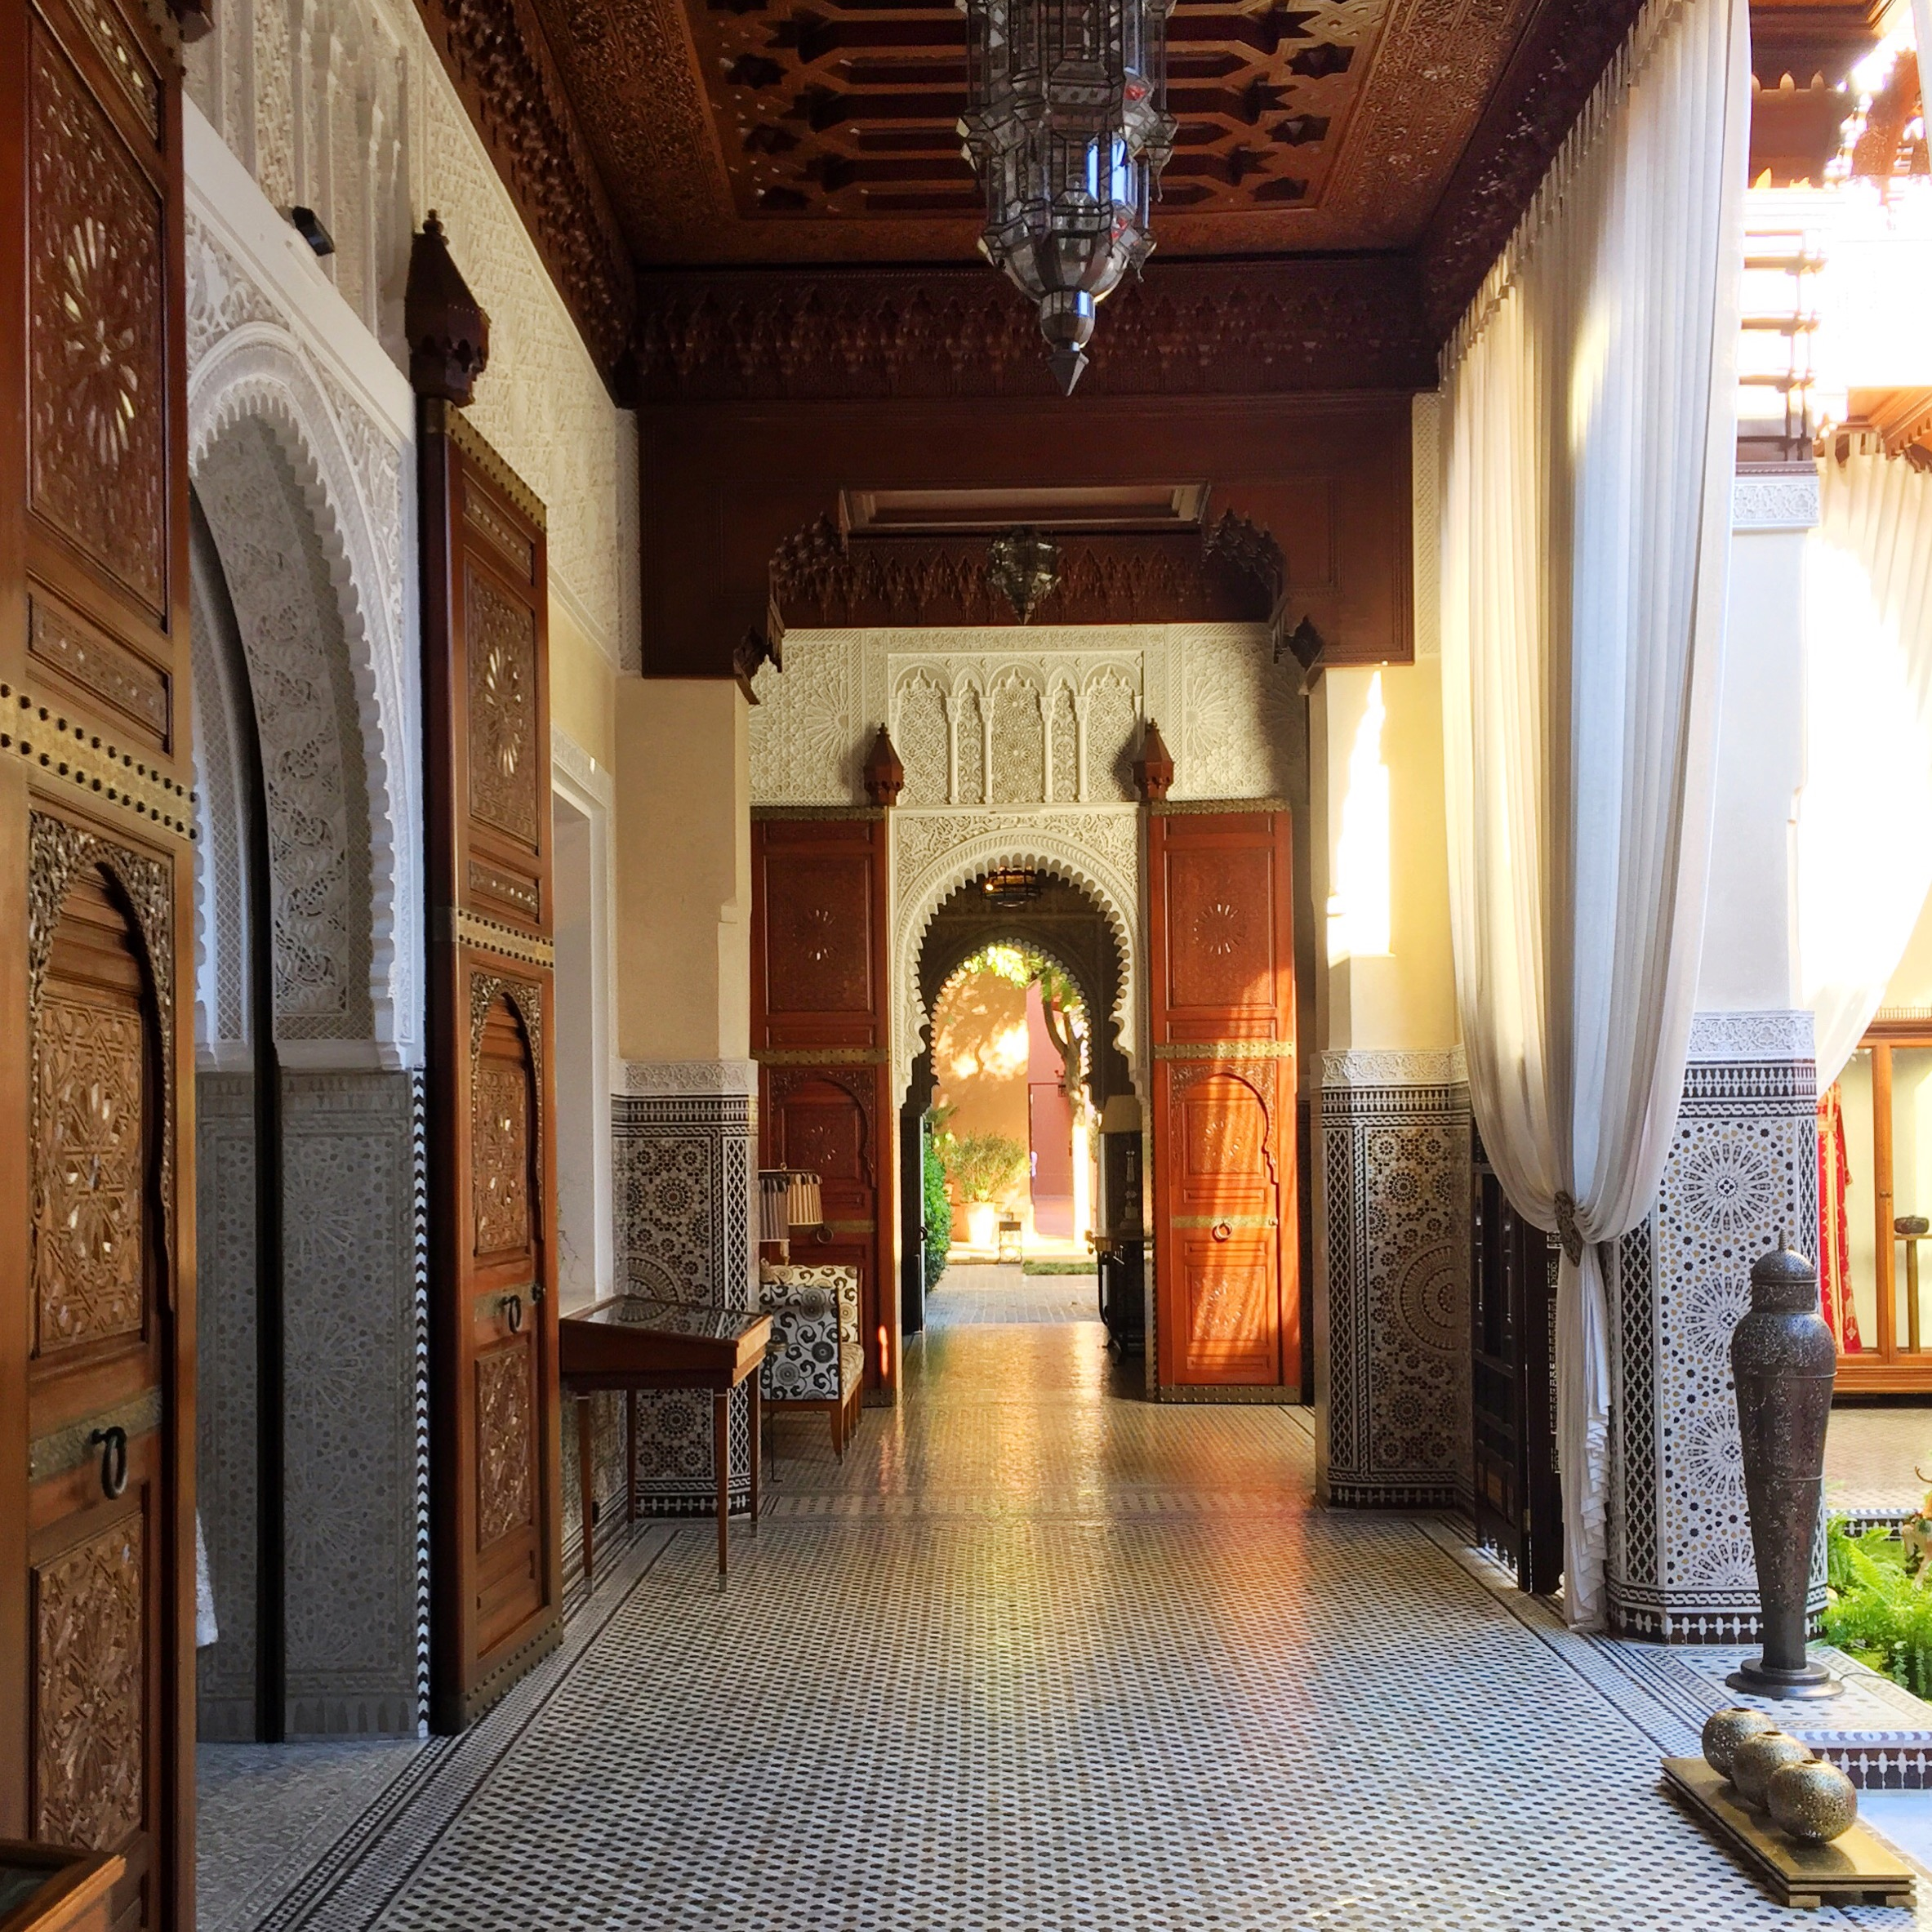 "You Can Live Like Royalty at this Marrakech Hotel Dreamed up by the King of Morocco (Travel + Leisure)   ""Marrakech is a big couscous with 24 vegetables and all the colors,"" my guide Moustapha Chouquir said as he led me and my travel companions through the narrow lanes of the souk in Marrakech."